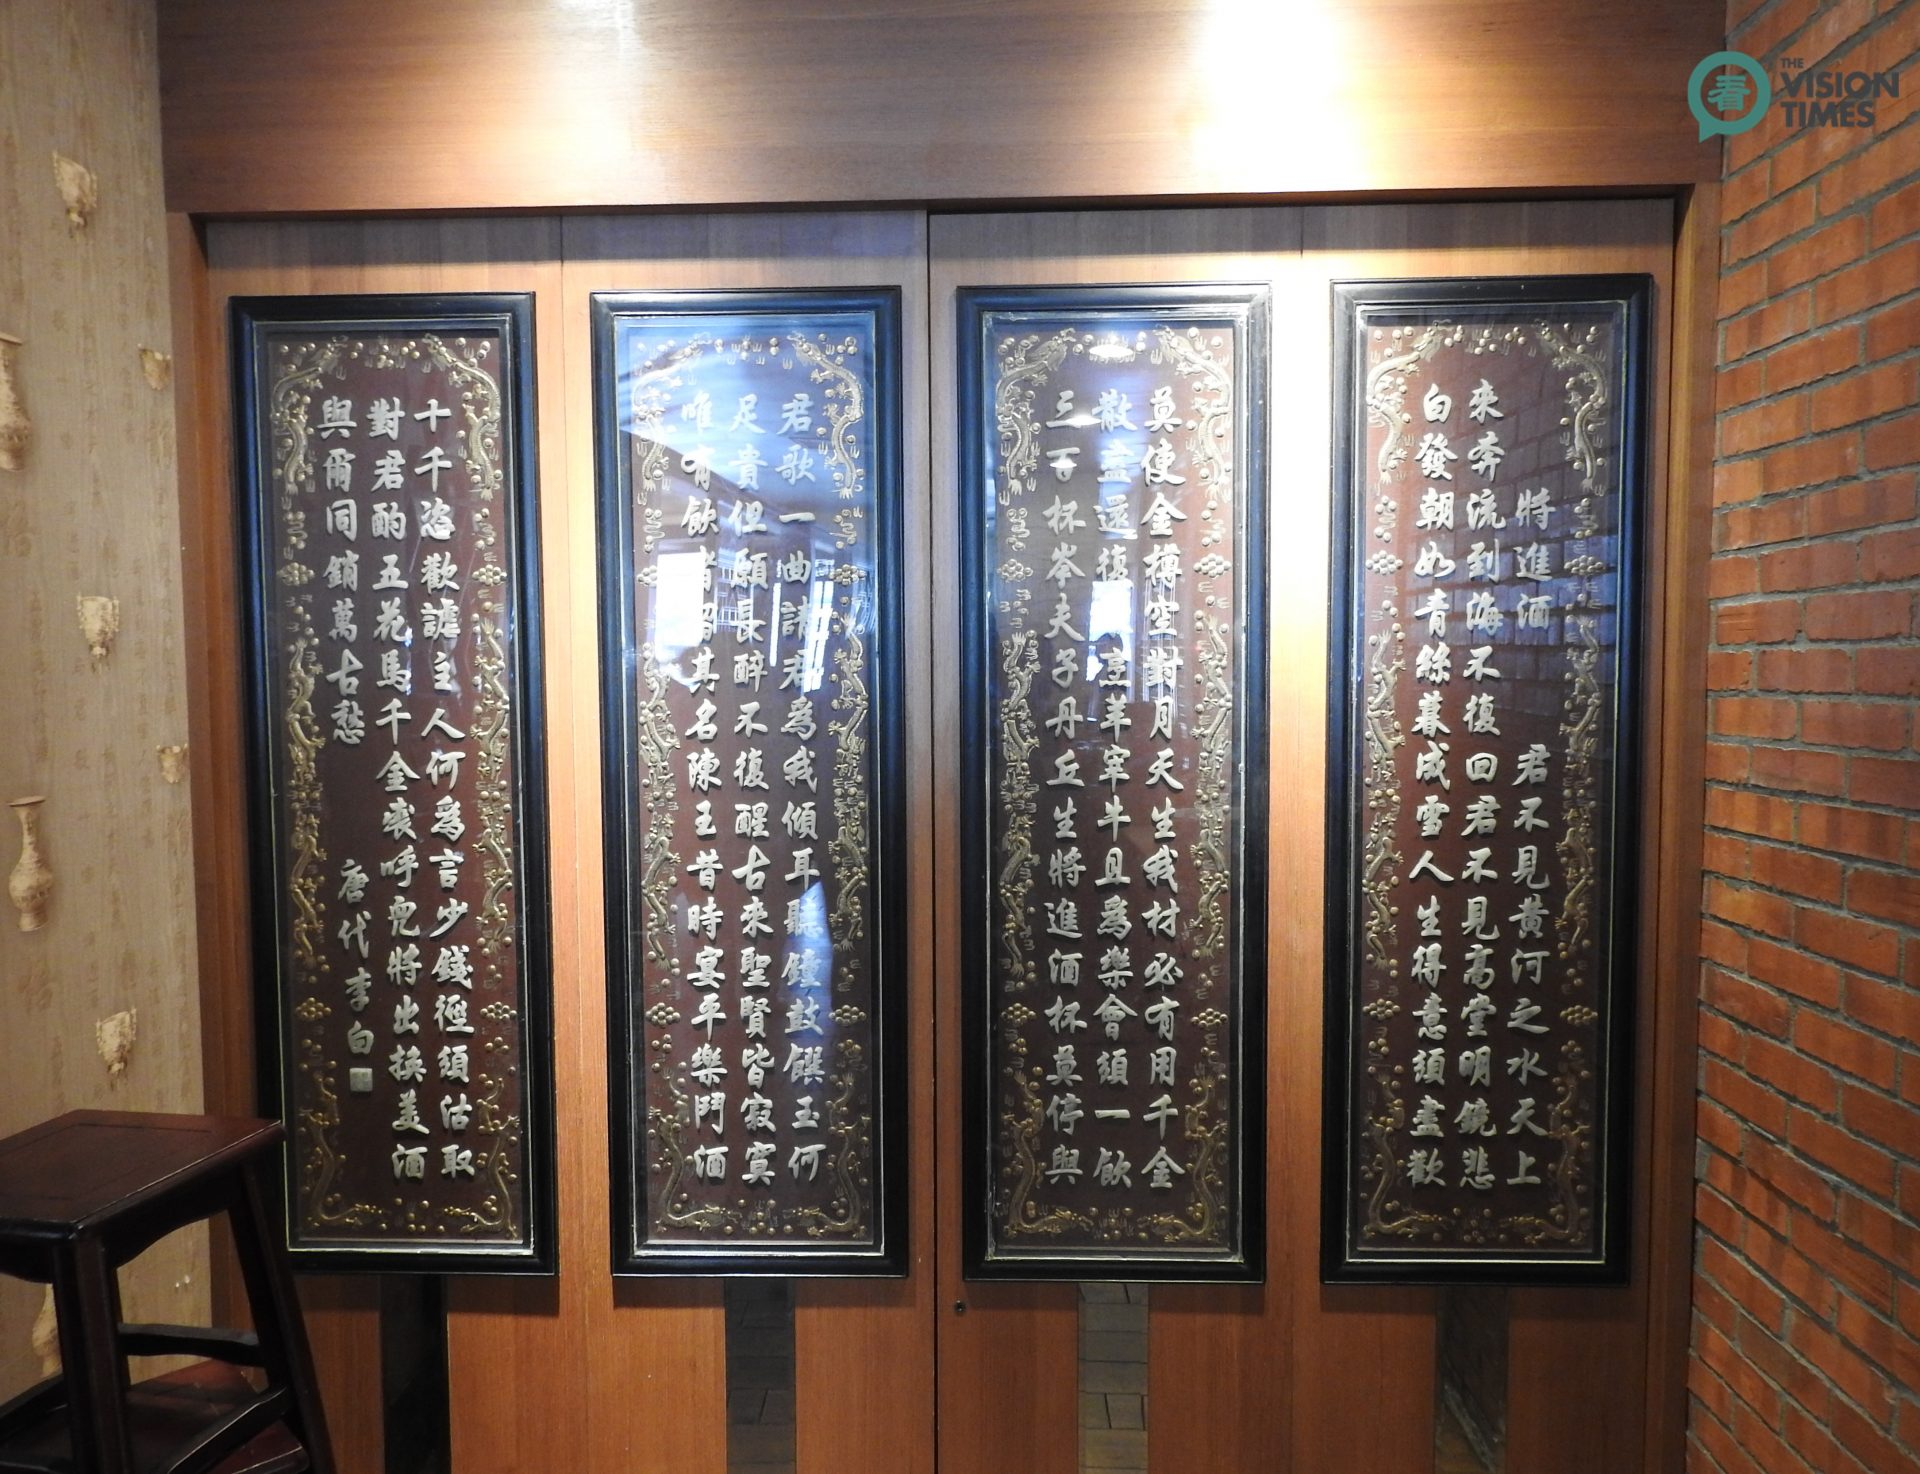 """A popular poem titled """"Bring in the Wine"""" written by famous Tang Dynasty poet Li Bai (李白) is hung on the wall of the restaurant. (Image: Billy Shyu / Vision Times)"""